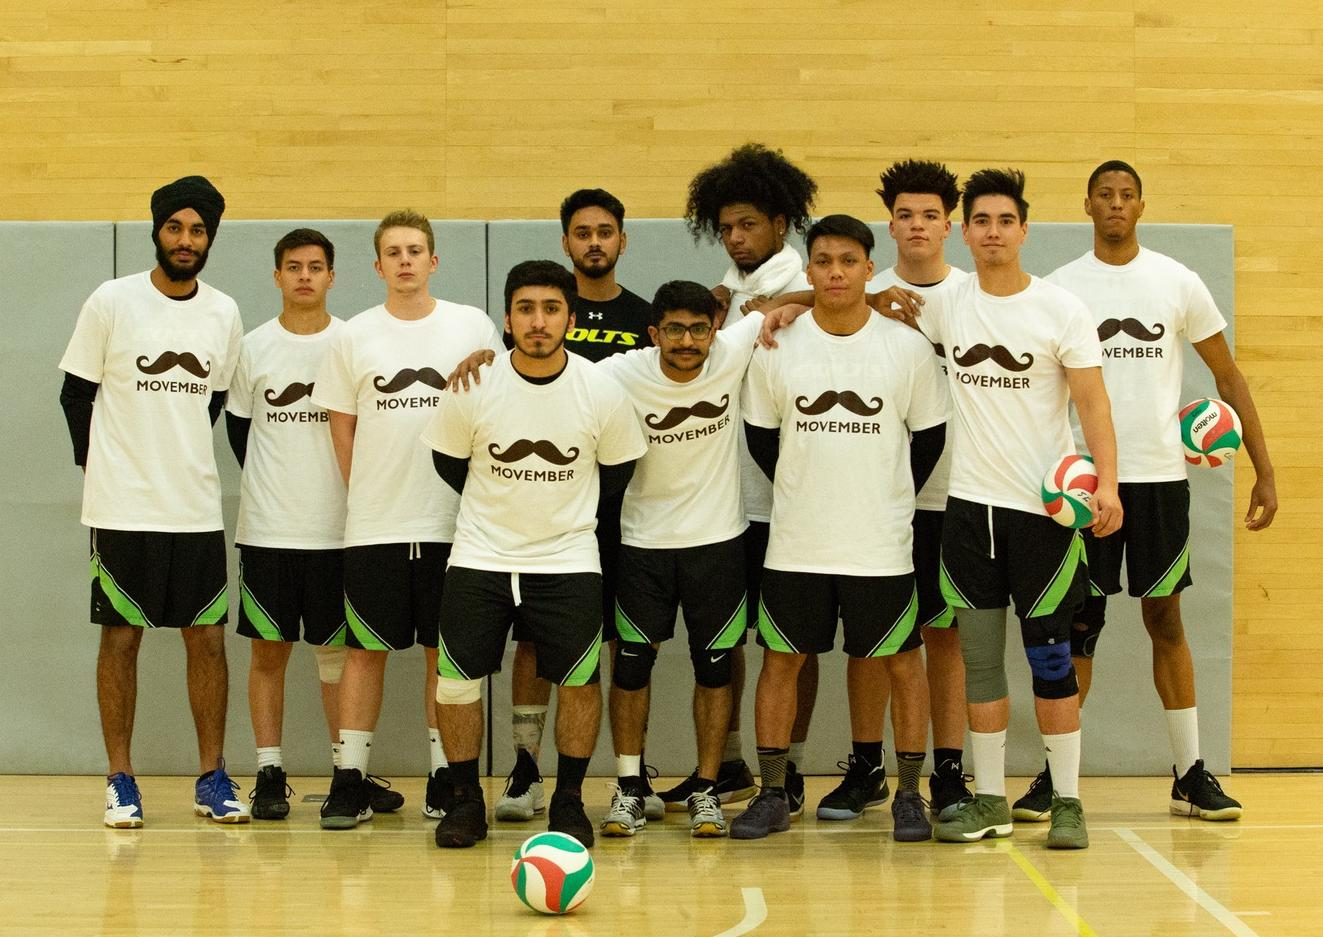 The men's team poses in their Movember shirts just before tip off against the George Brown Huskies on Thursday night. (Nicole Ventura/Colts Media)